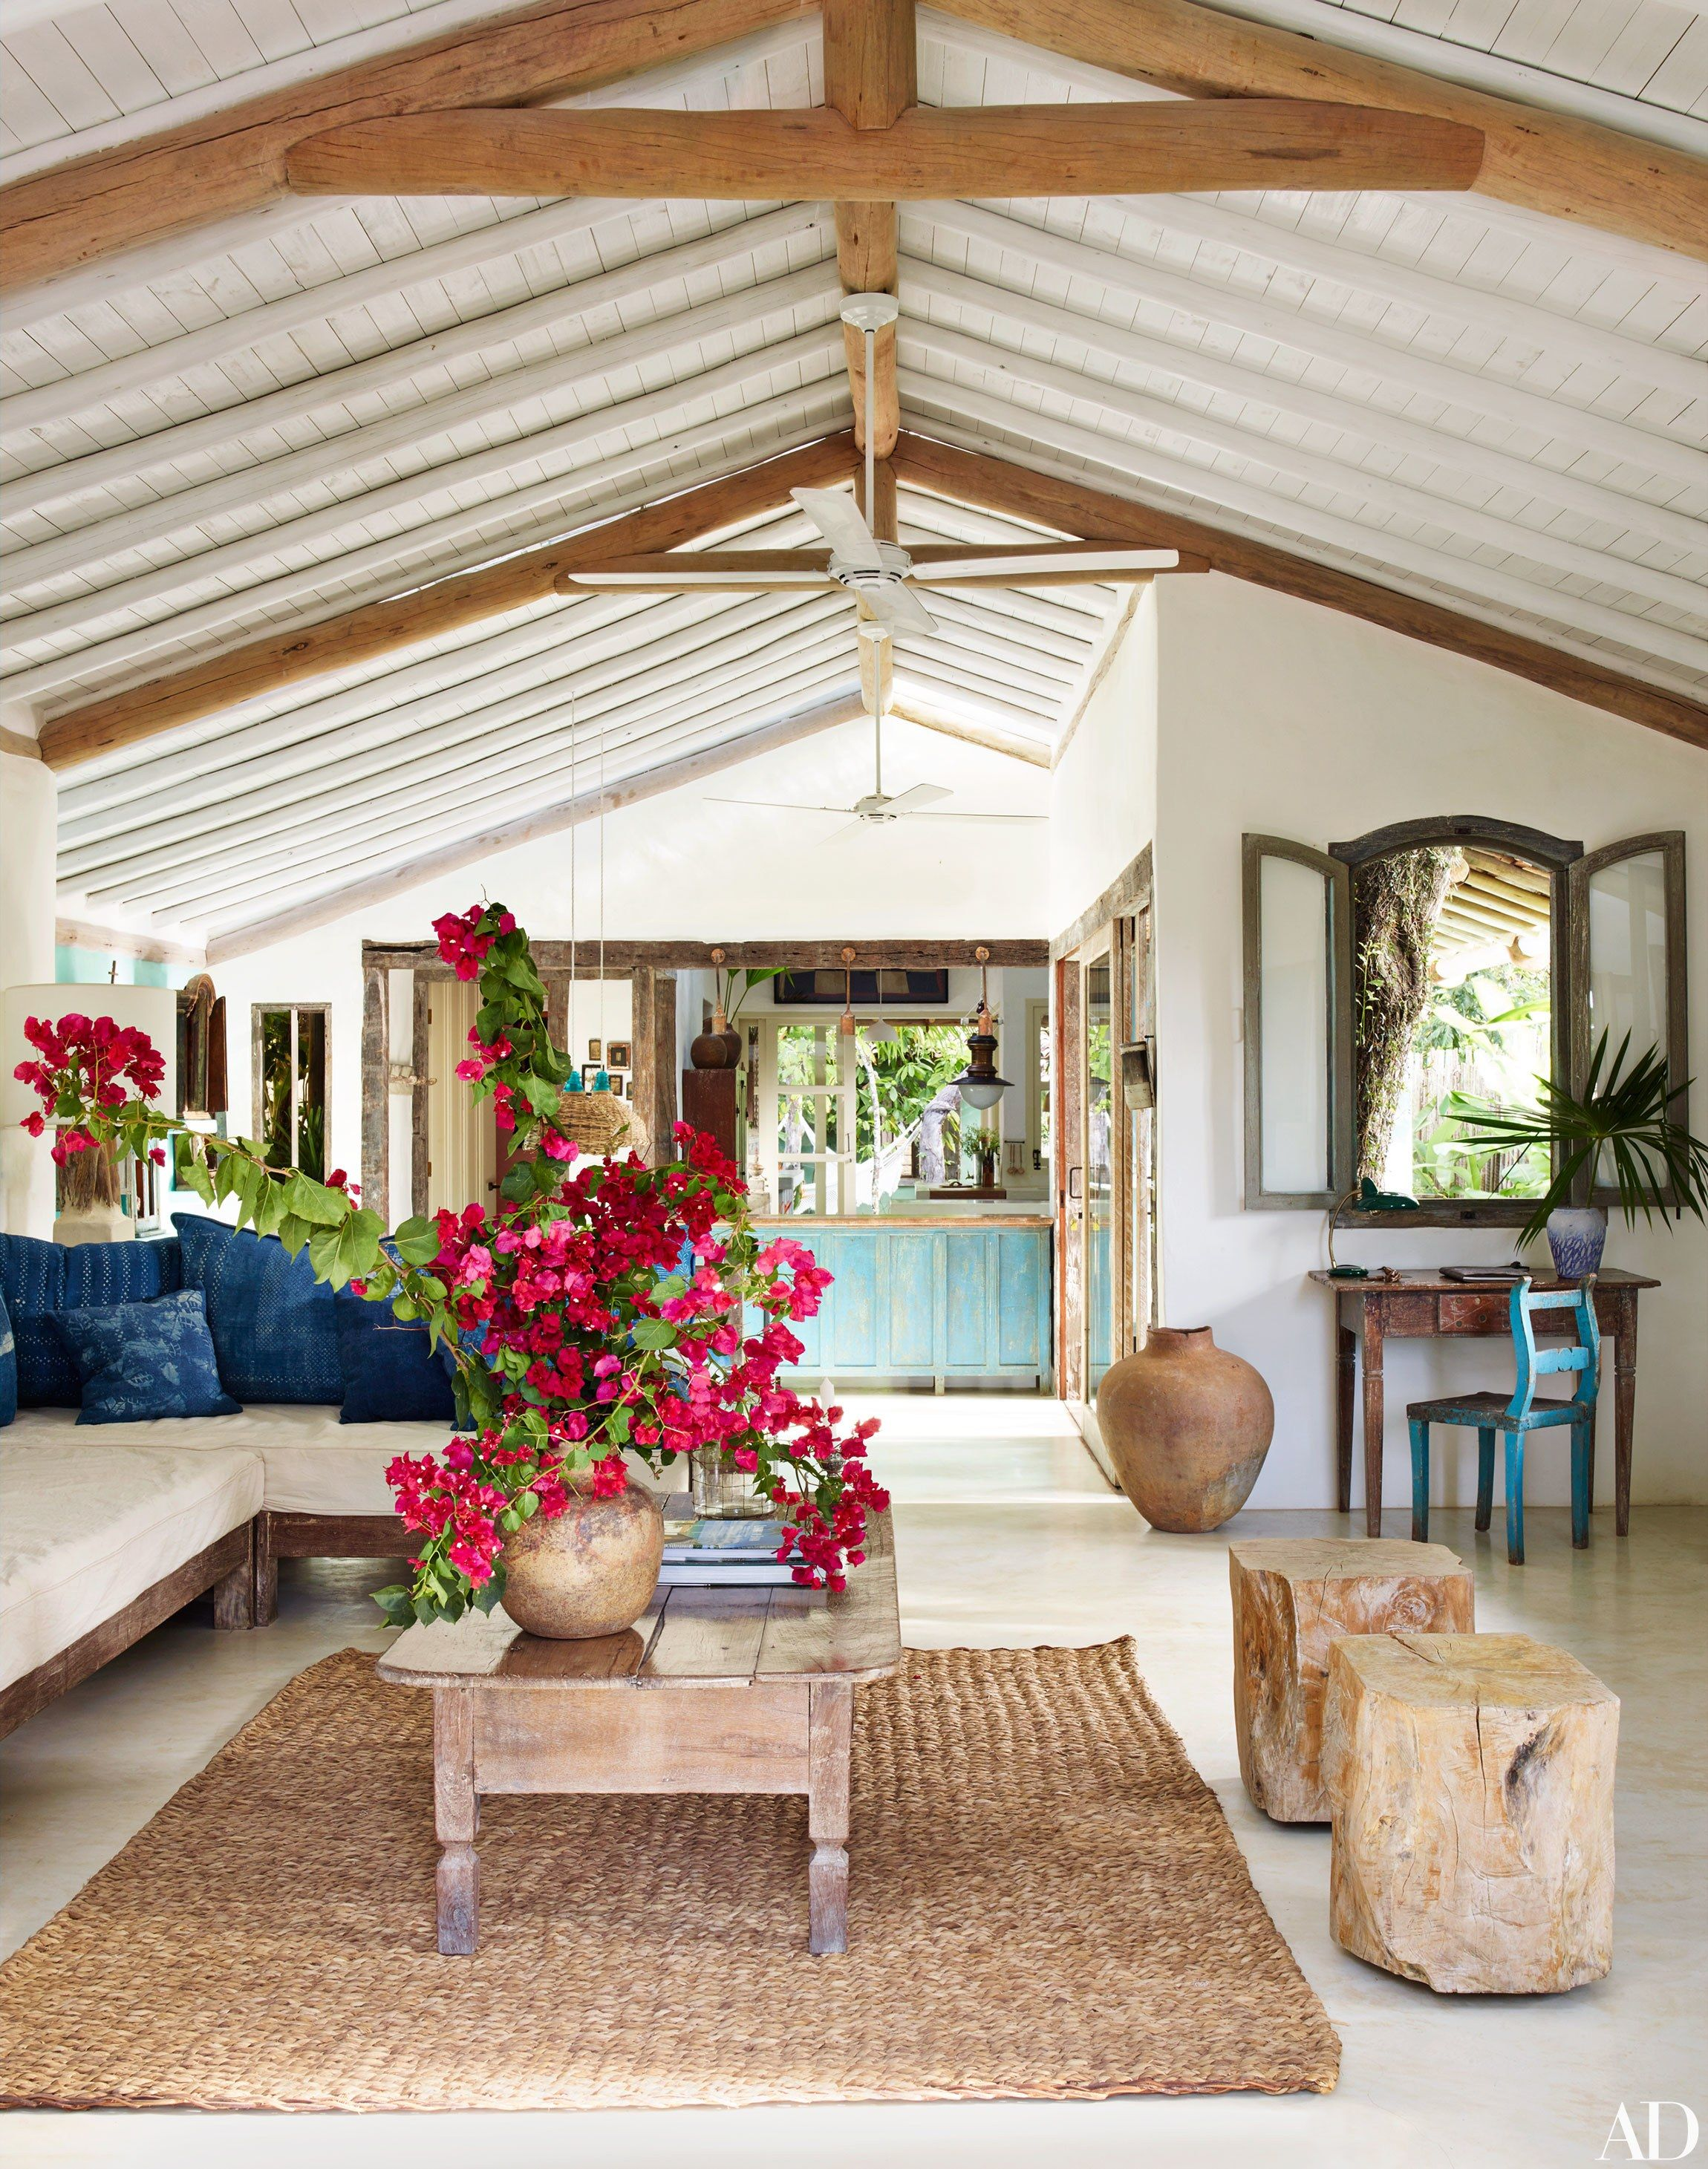 Go Inside Anderson Cooperu0027s Trancoso, Brazil, Vacation Home Photos |  Architectural Digest